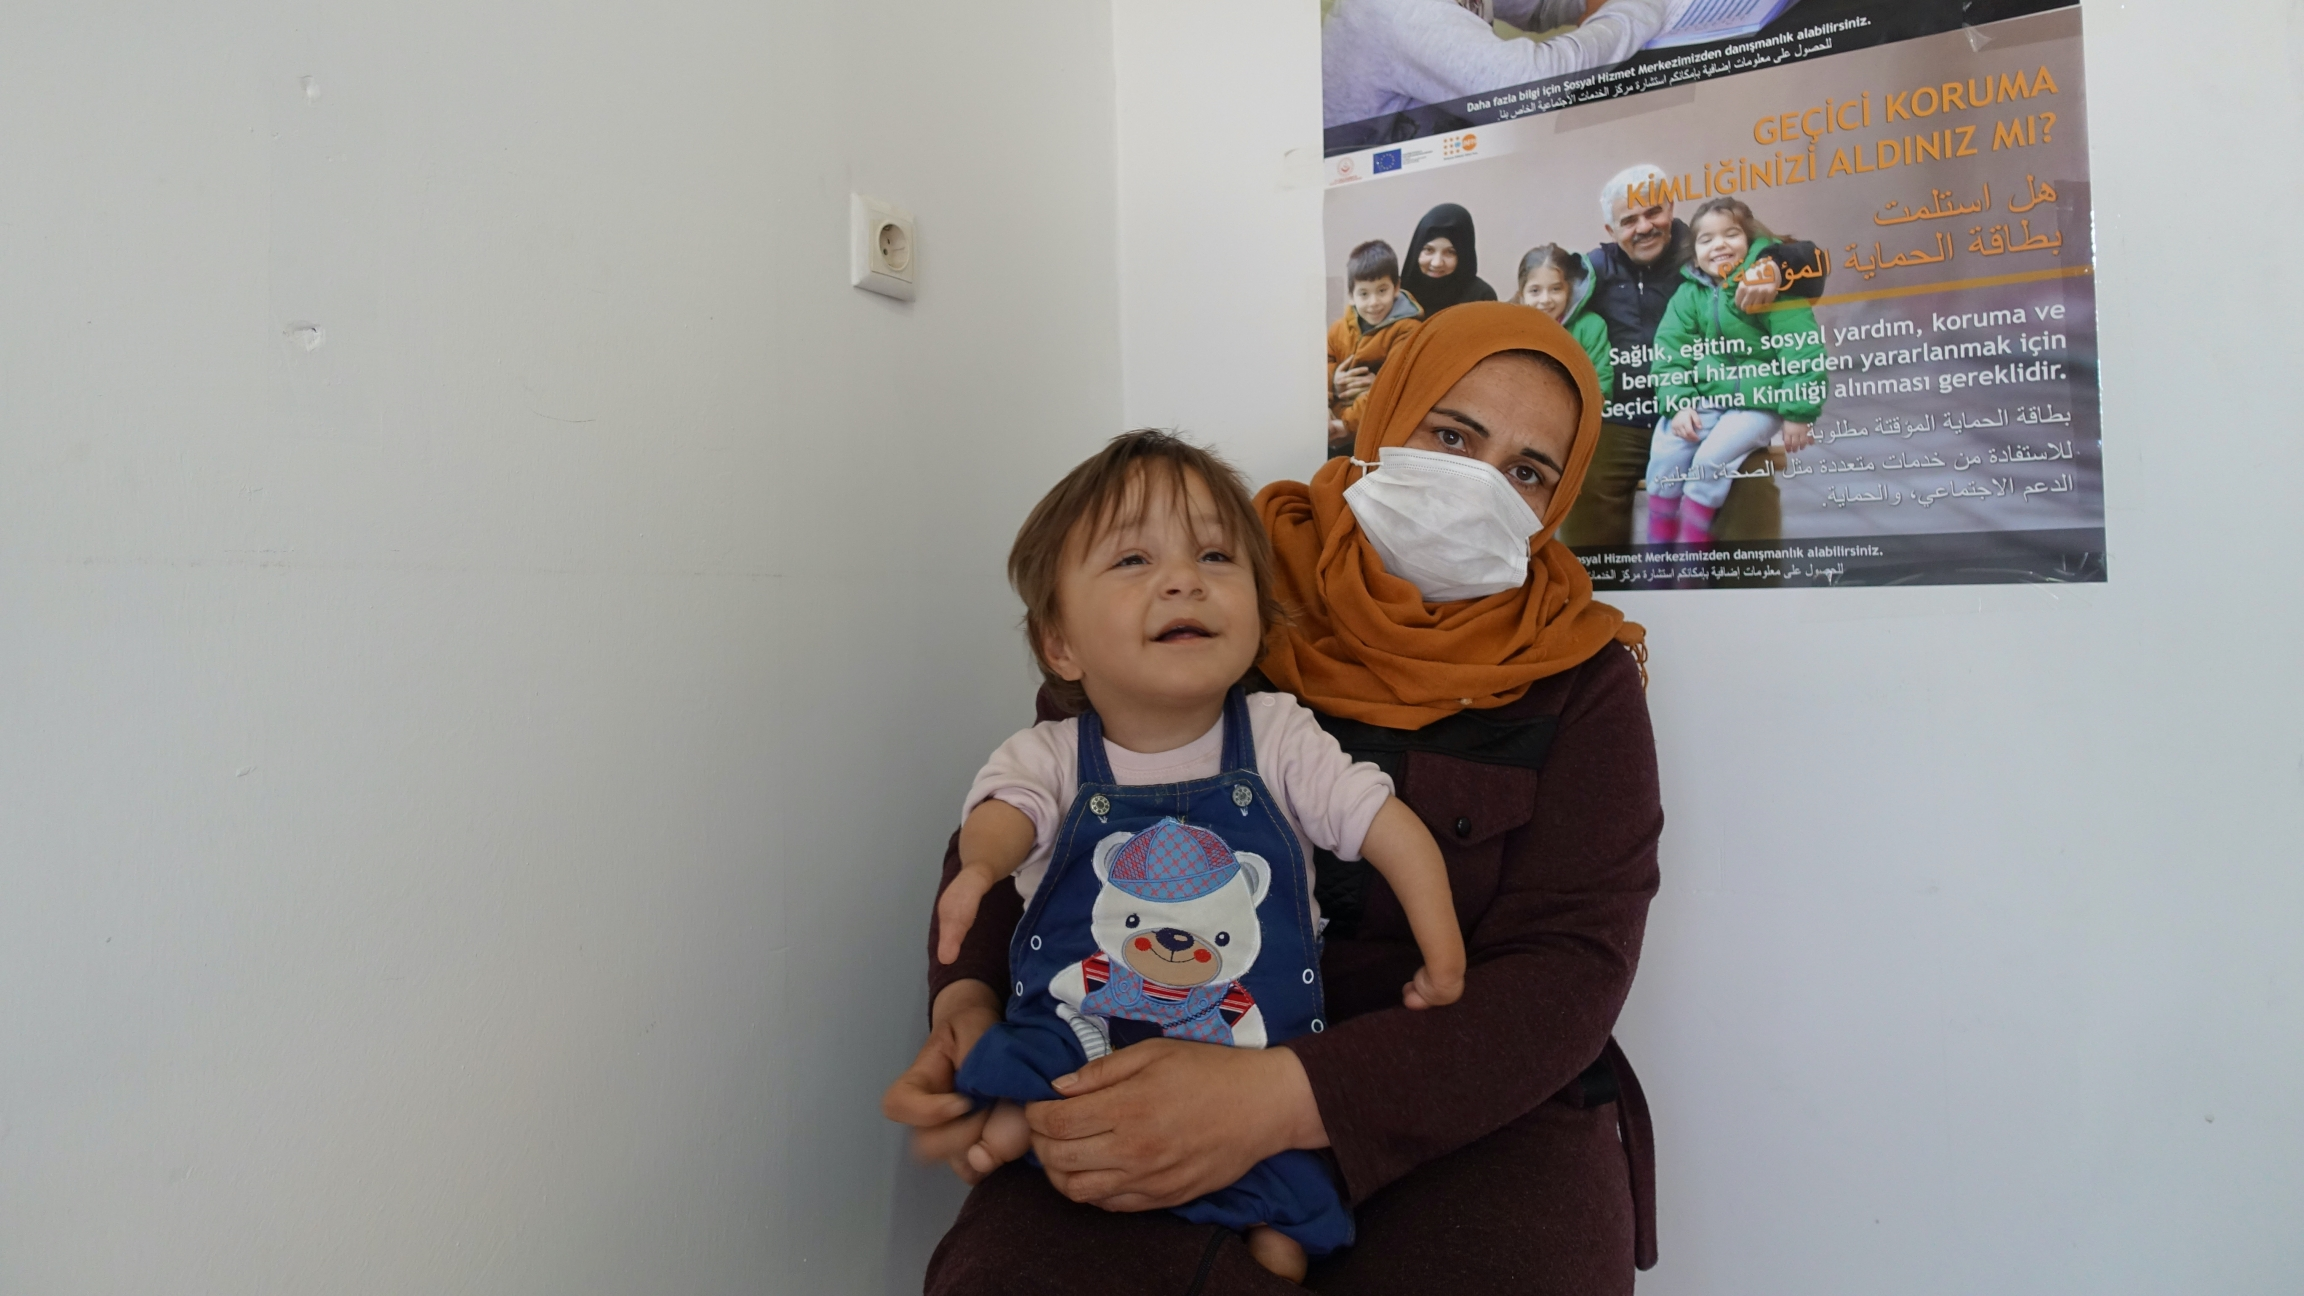 Thirty-five-year-old Dalya Khaled al-Masoud said she had two perfectly healthy pregnancies prior to her daughter Fatema. She believes the chemical attack in Khan Sheikhoun led to her daughter's deformities.